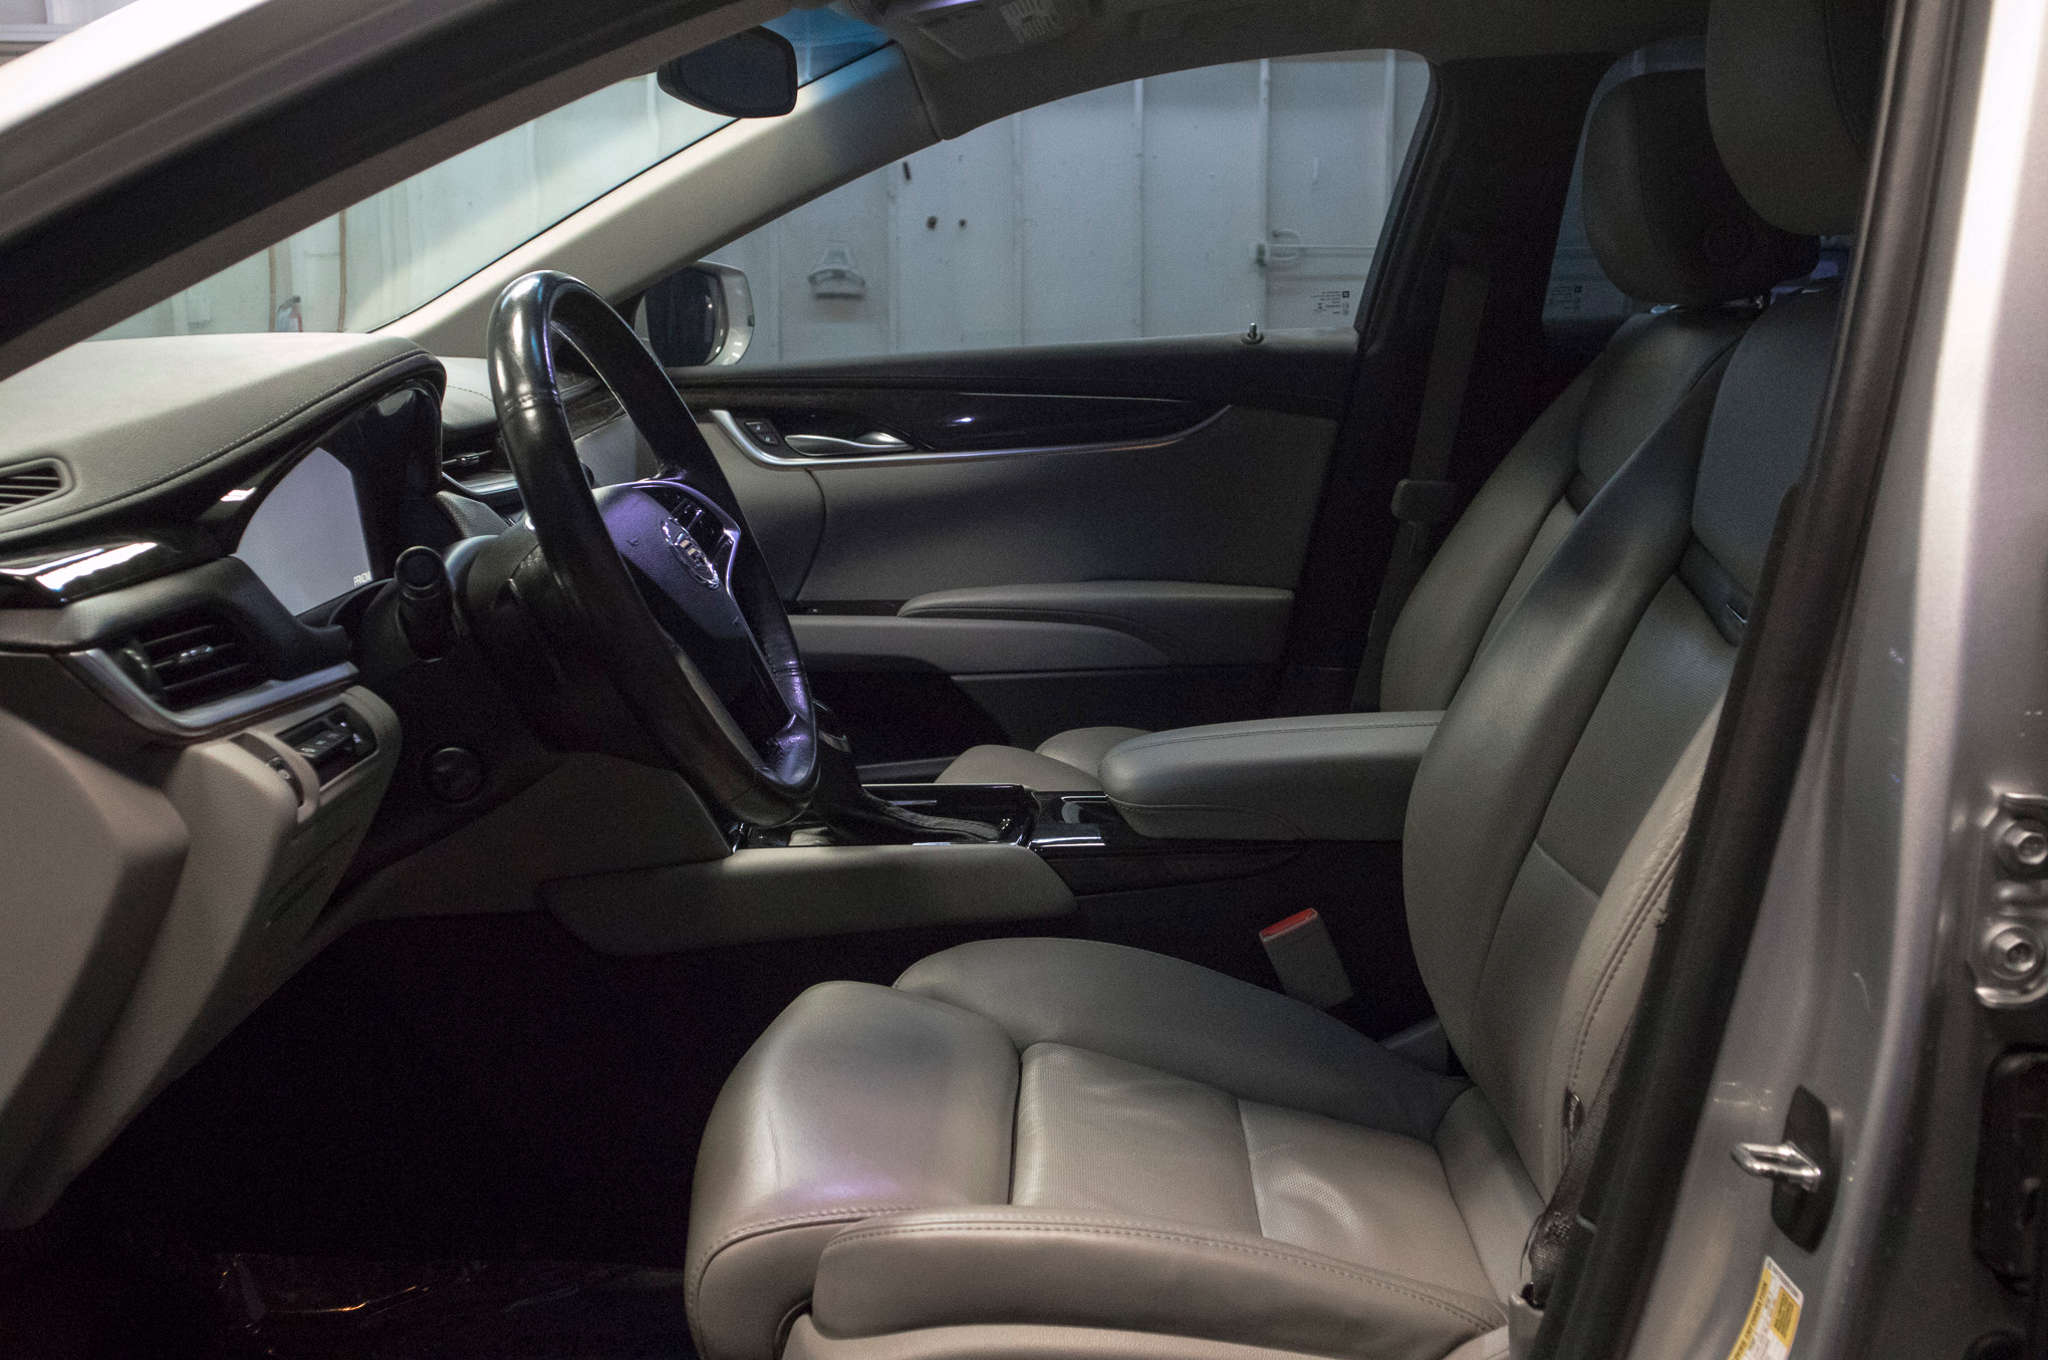 eagle sale dsc for superior parks sales echelon xts bwg cadillac gallery